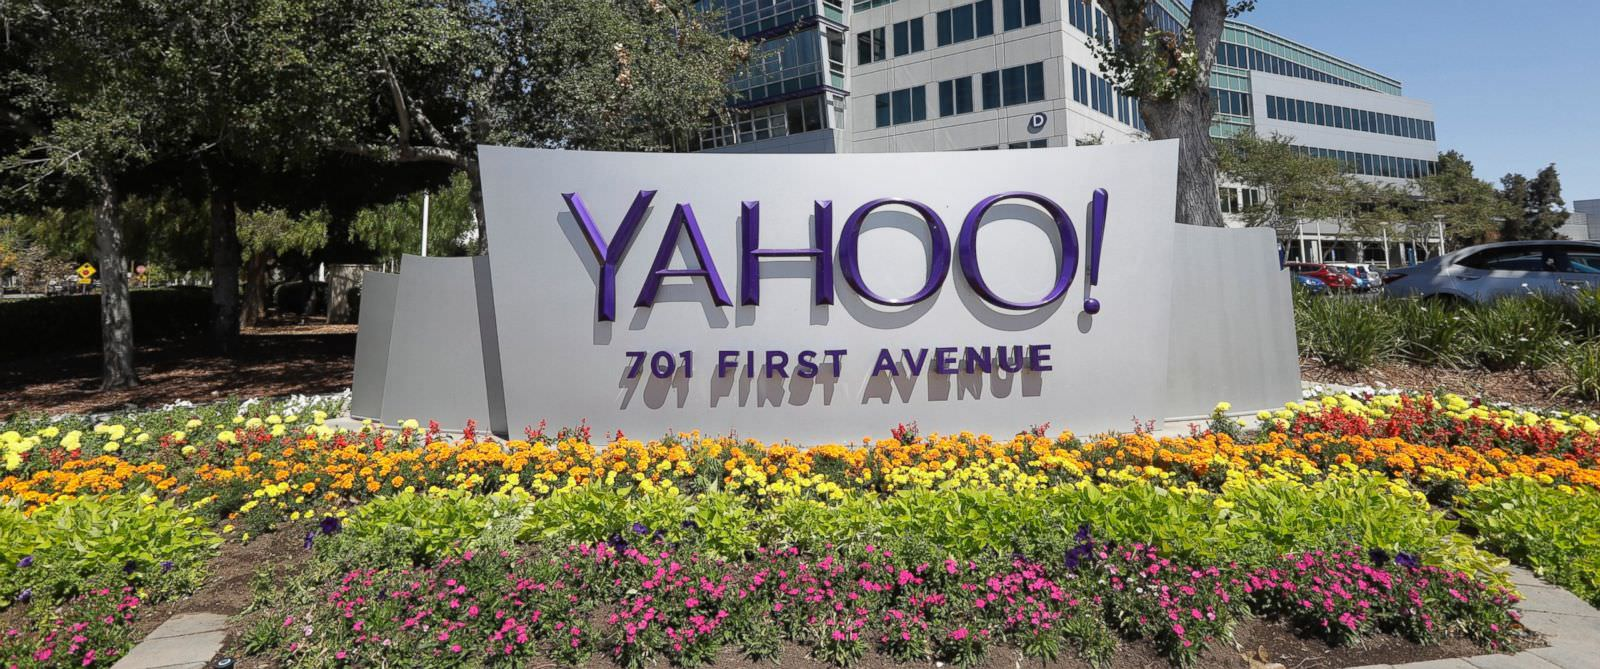 the Yahoo sign at company headquarters